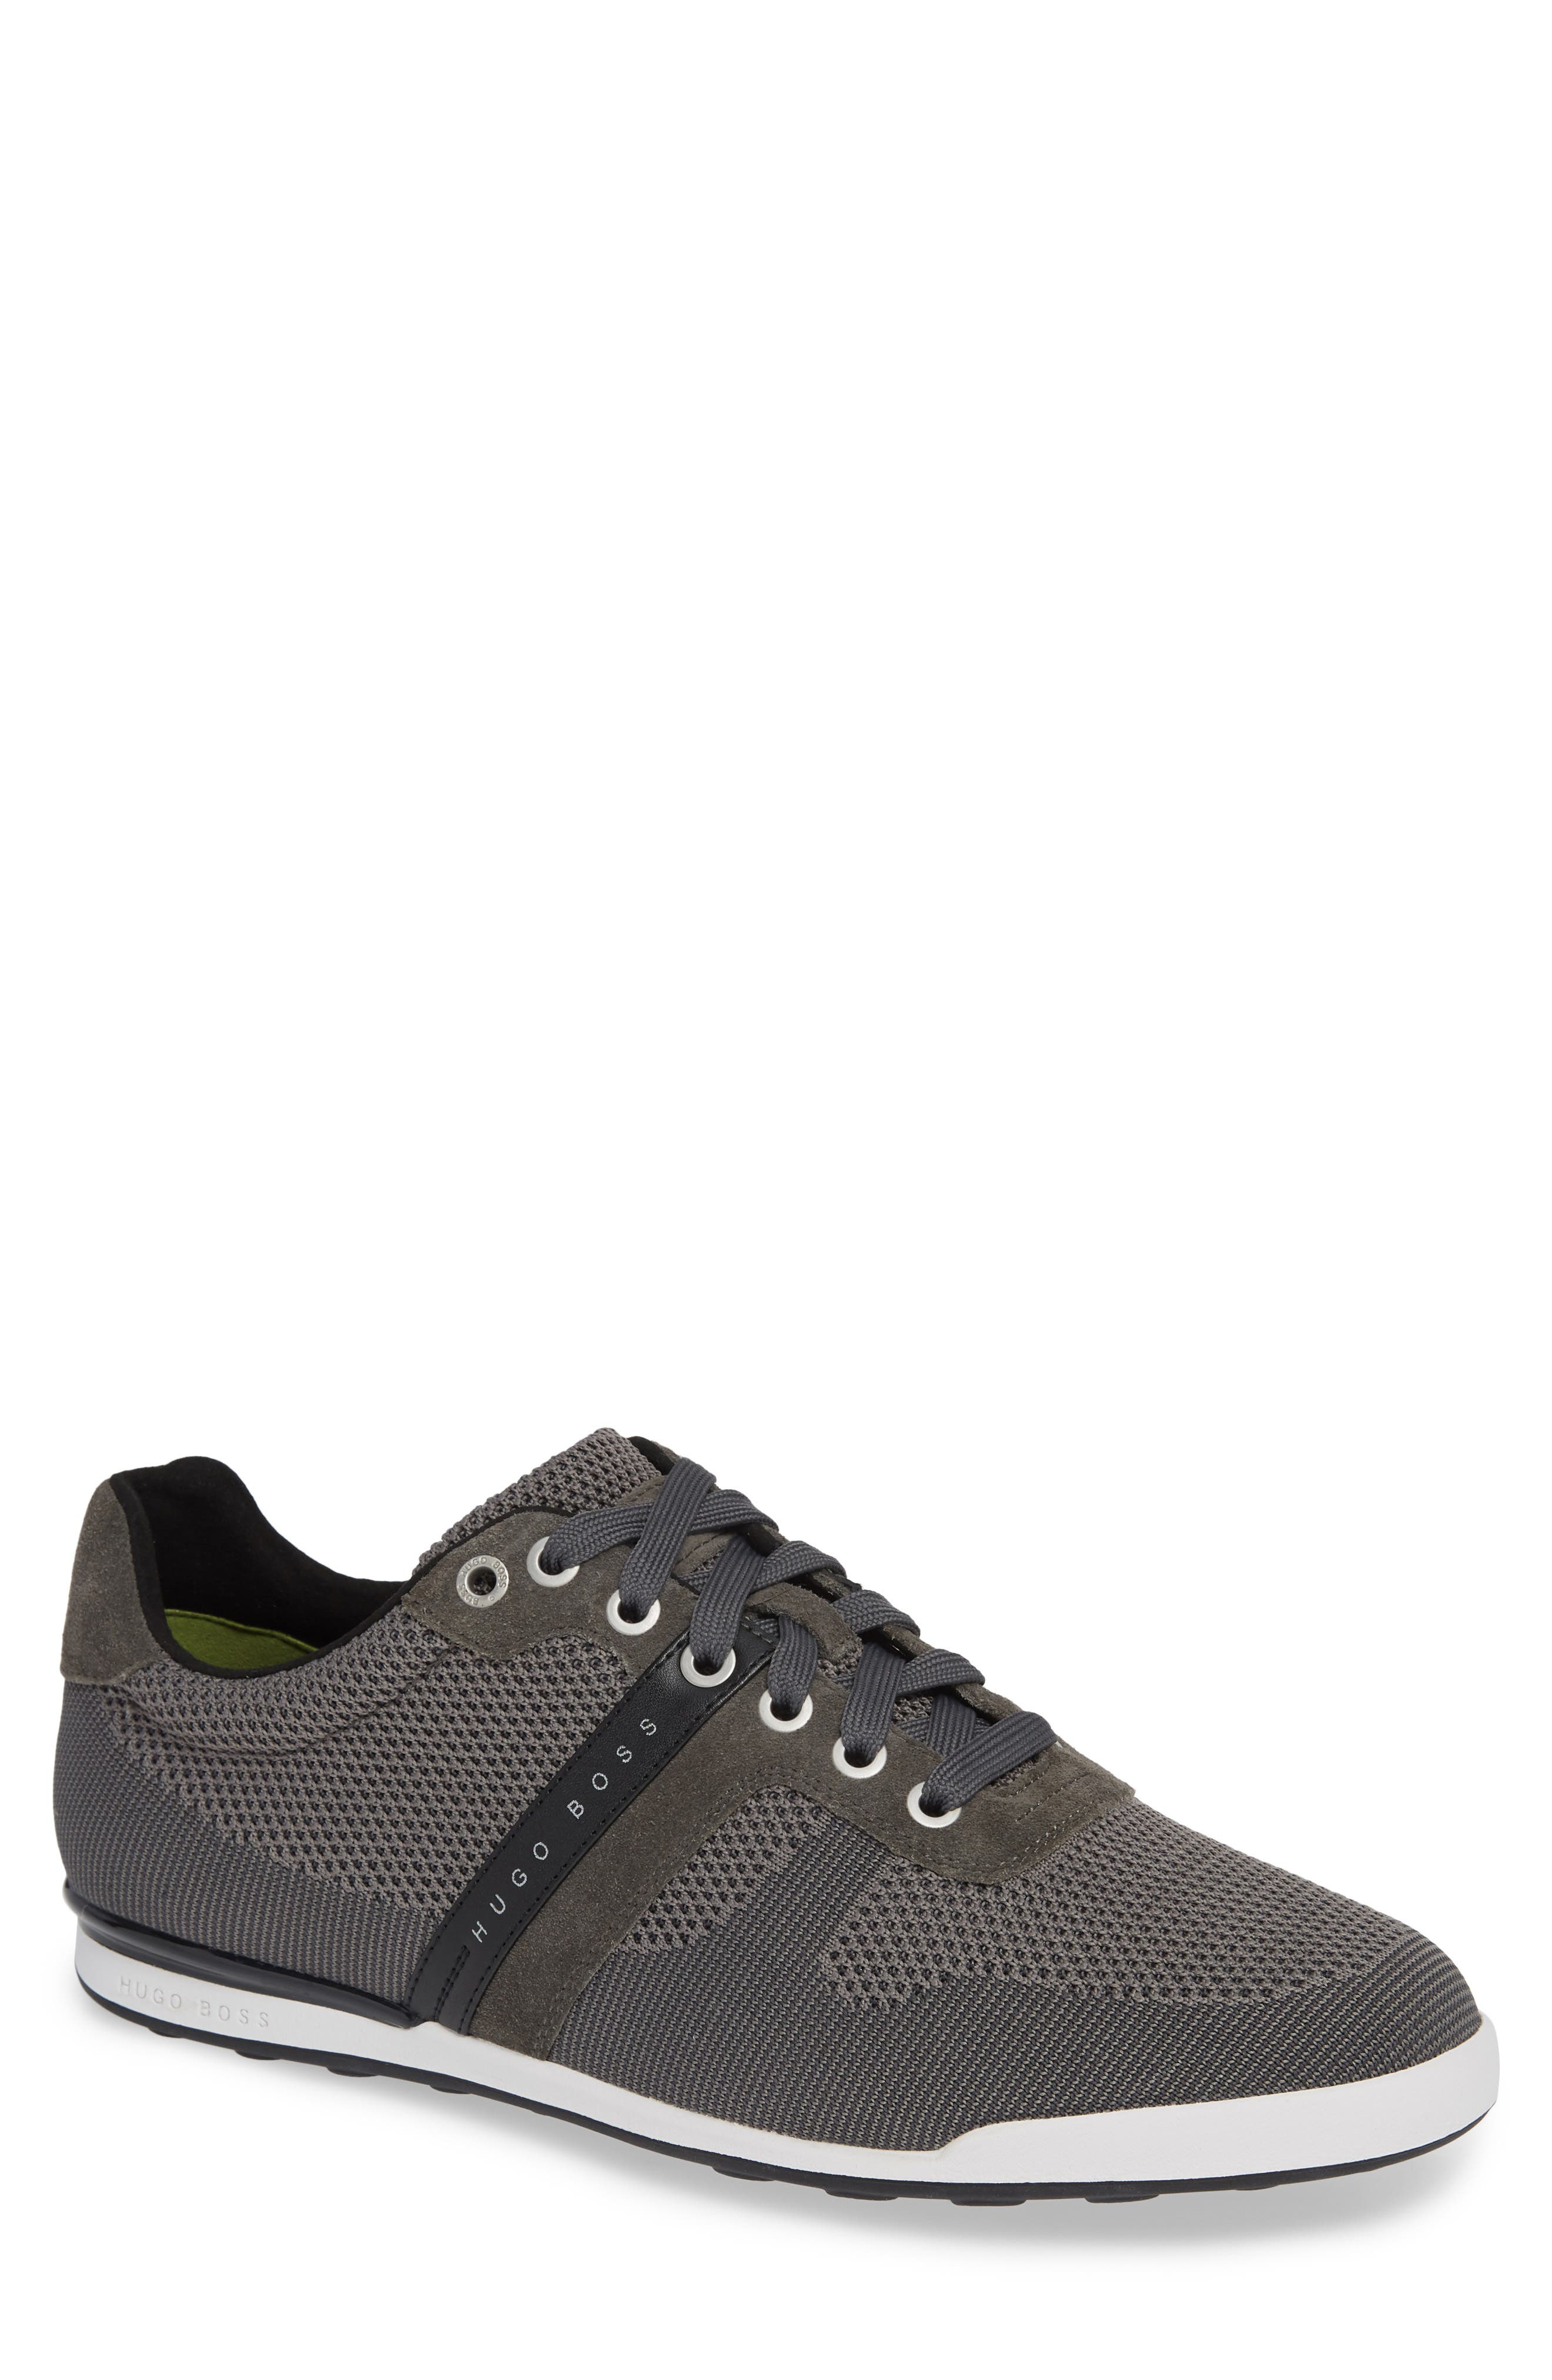 Hugo Boss Arkansas Lace-Up Sneaker,                         Main,                         color, 021